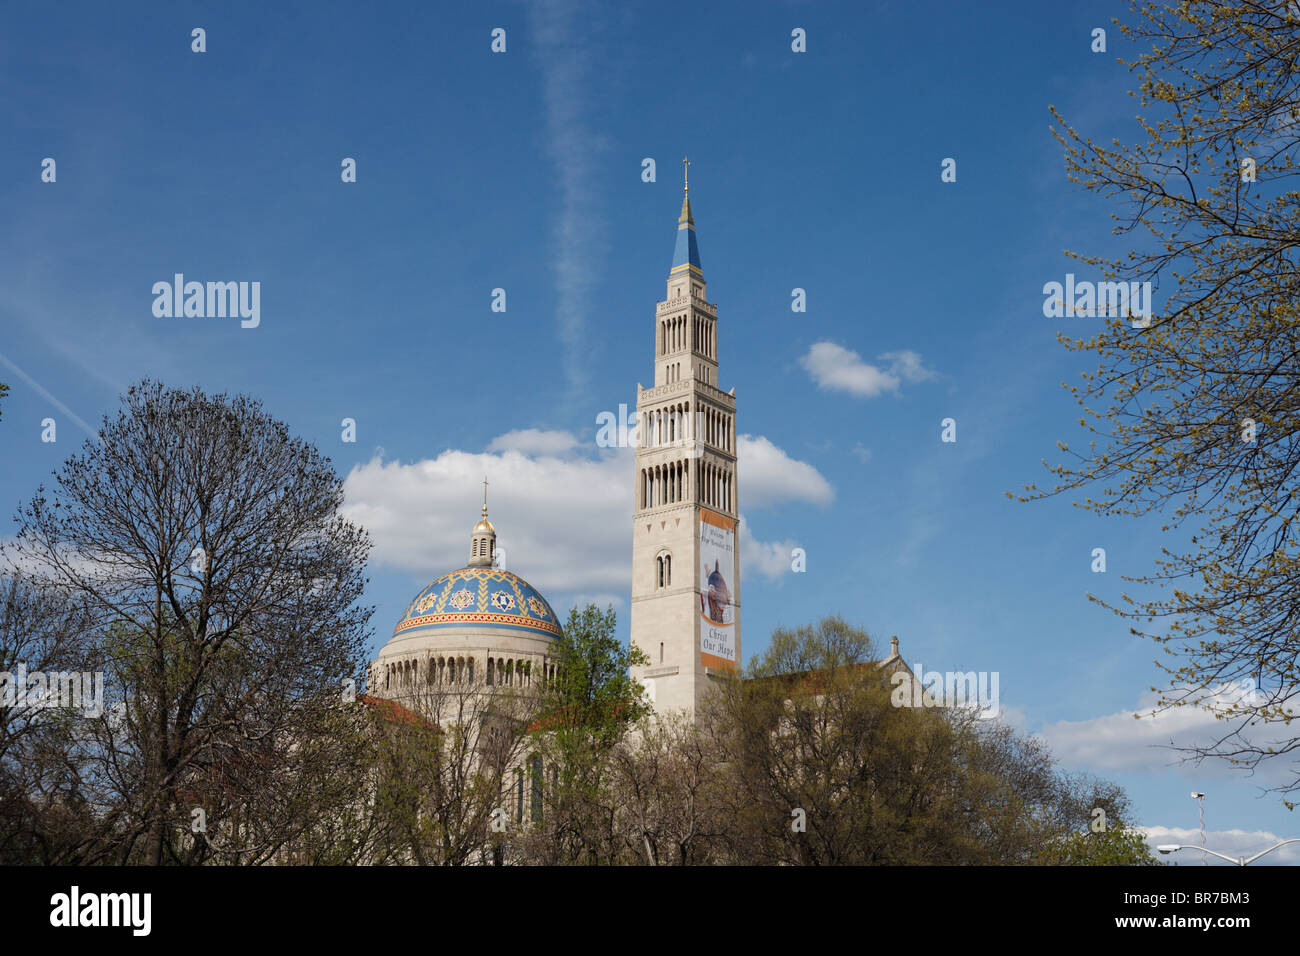 Basilica of the National Shrine of the Immaculate Conception, Washington, DC Stock Photo